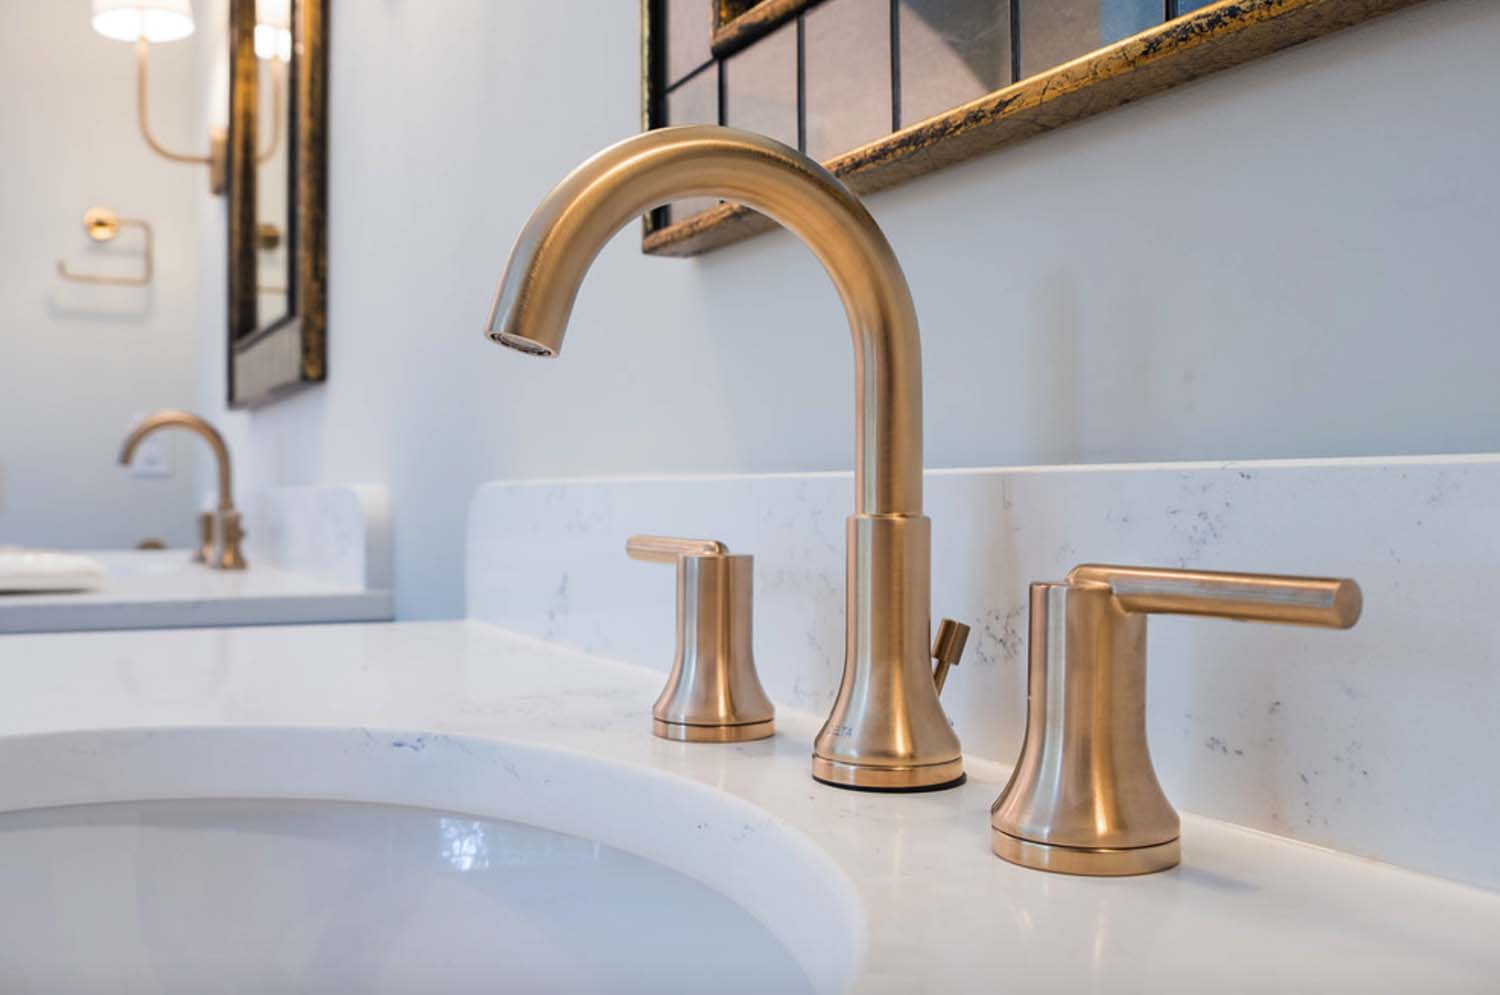 traditional-style-bathroom-sink-detail